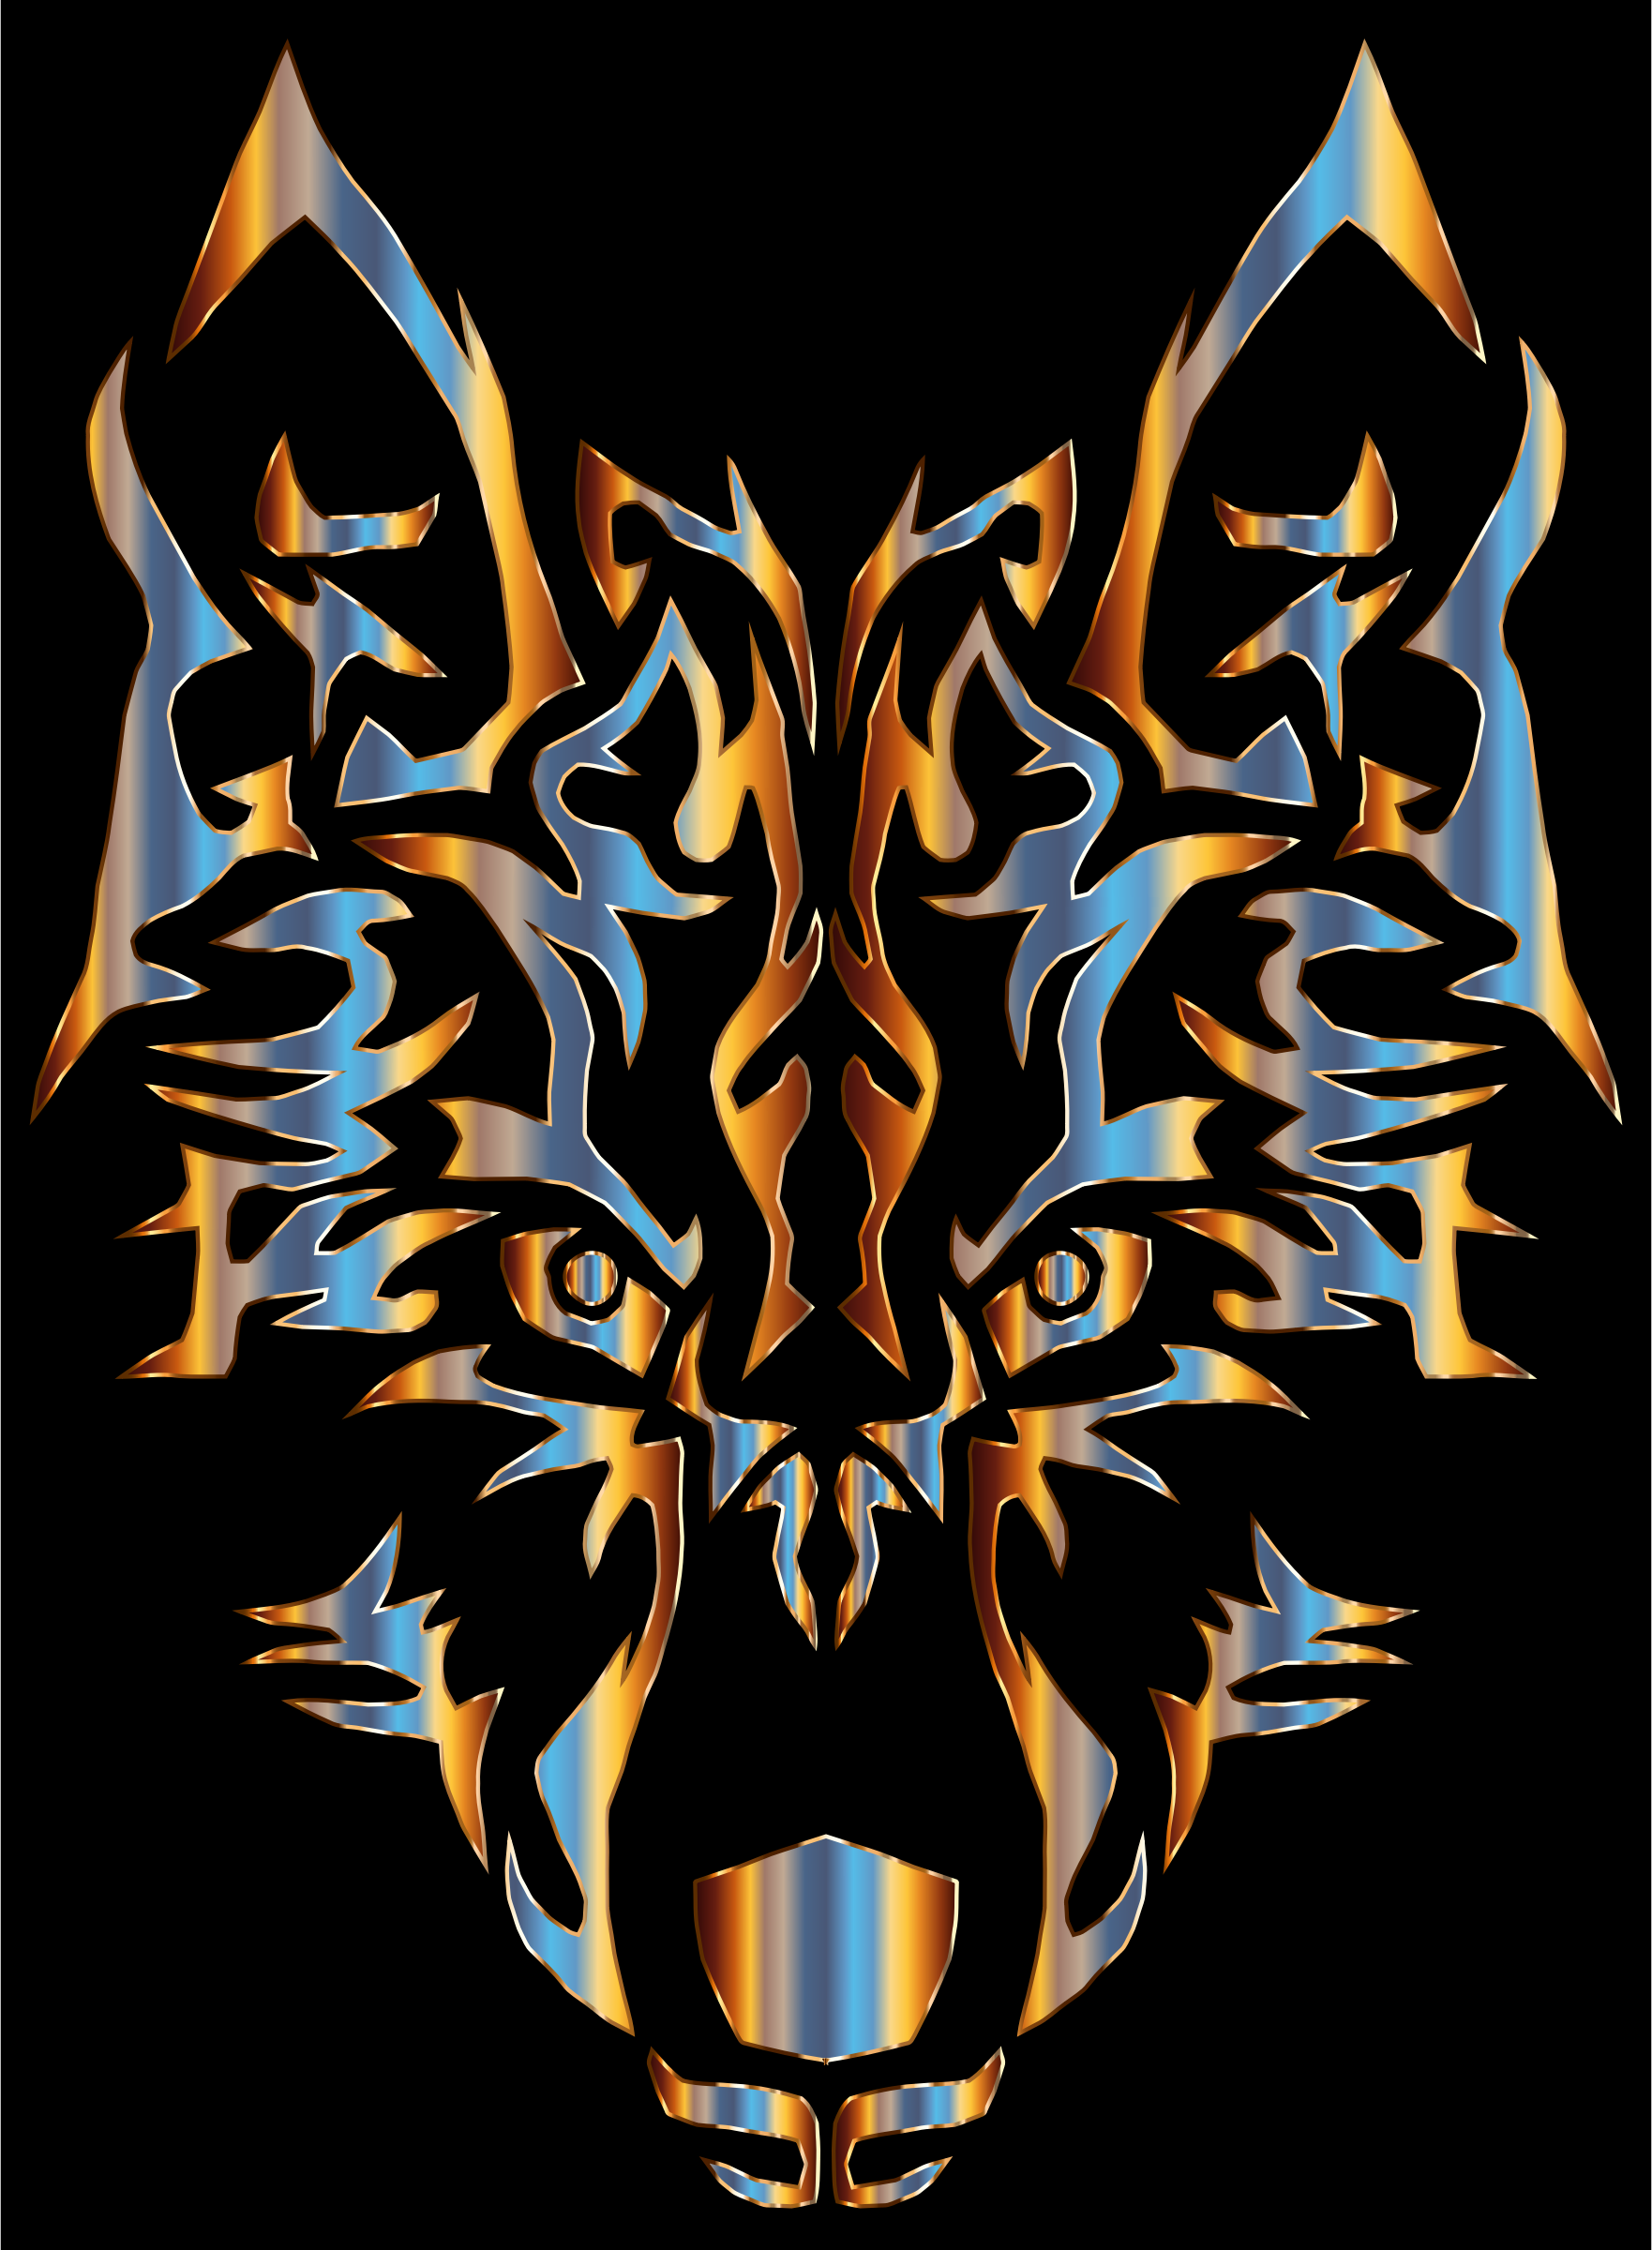 Chromatic Symmetric Tribal Wolf 2 by GDJ